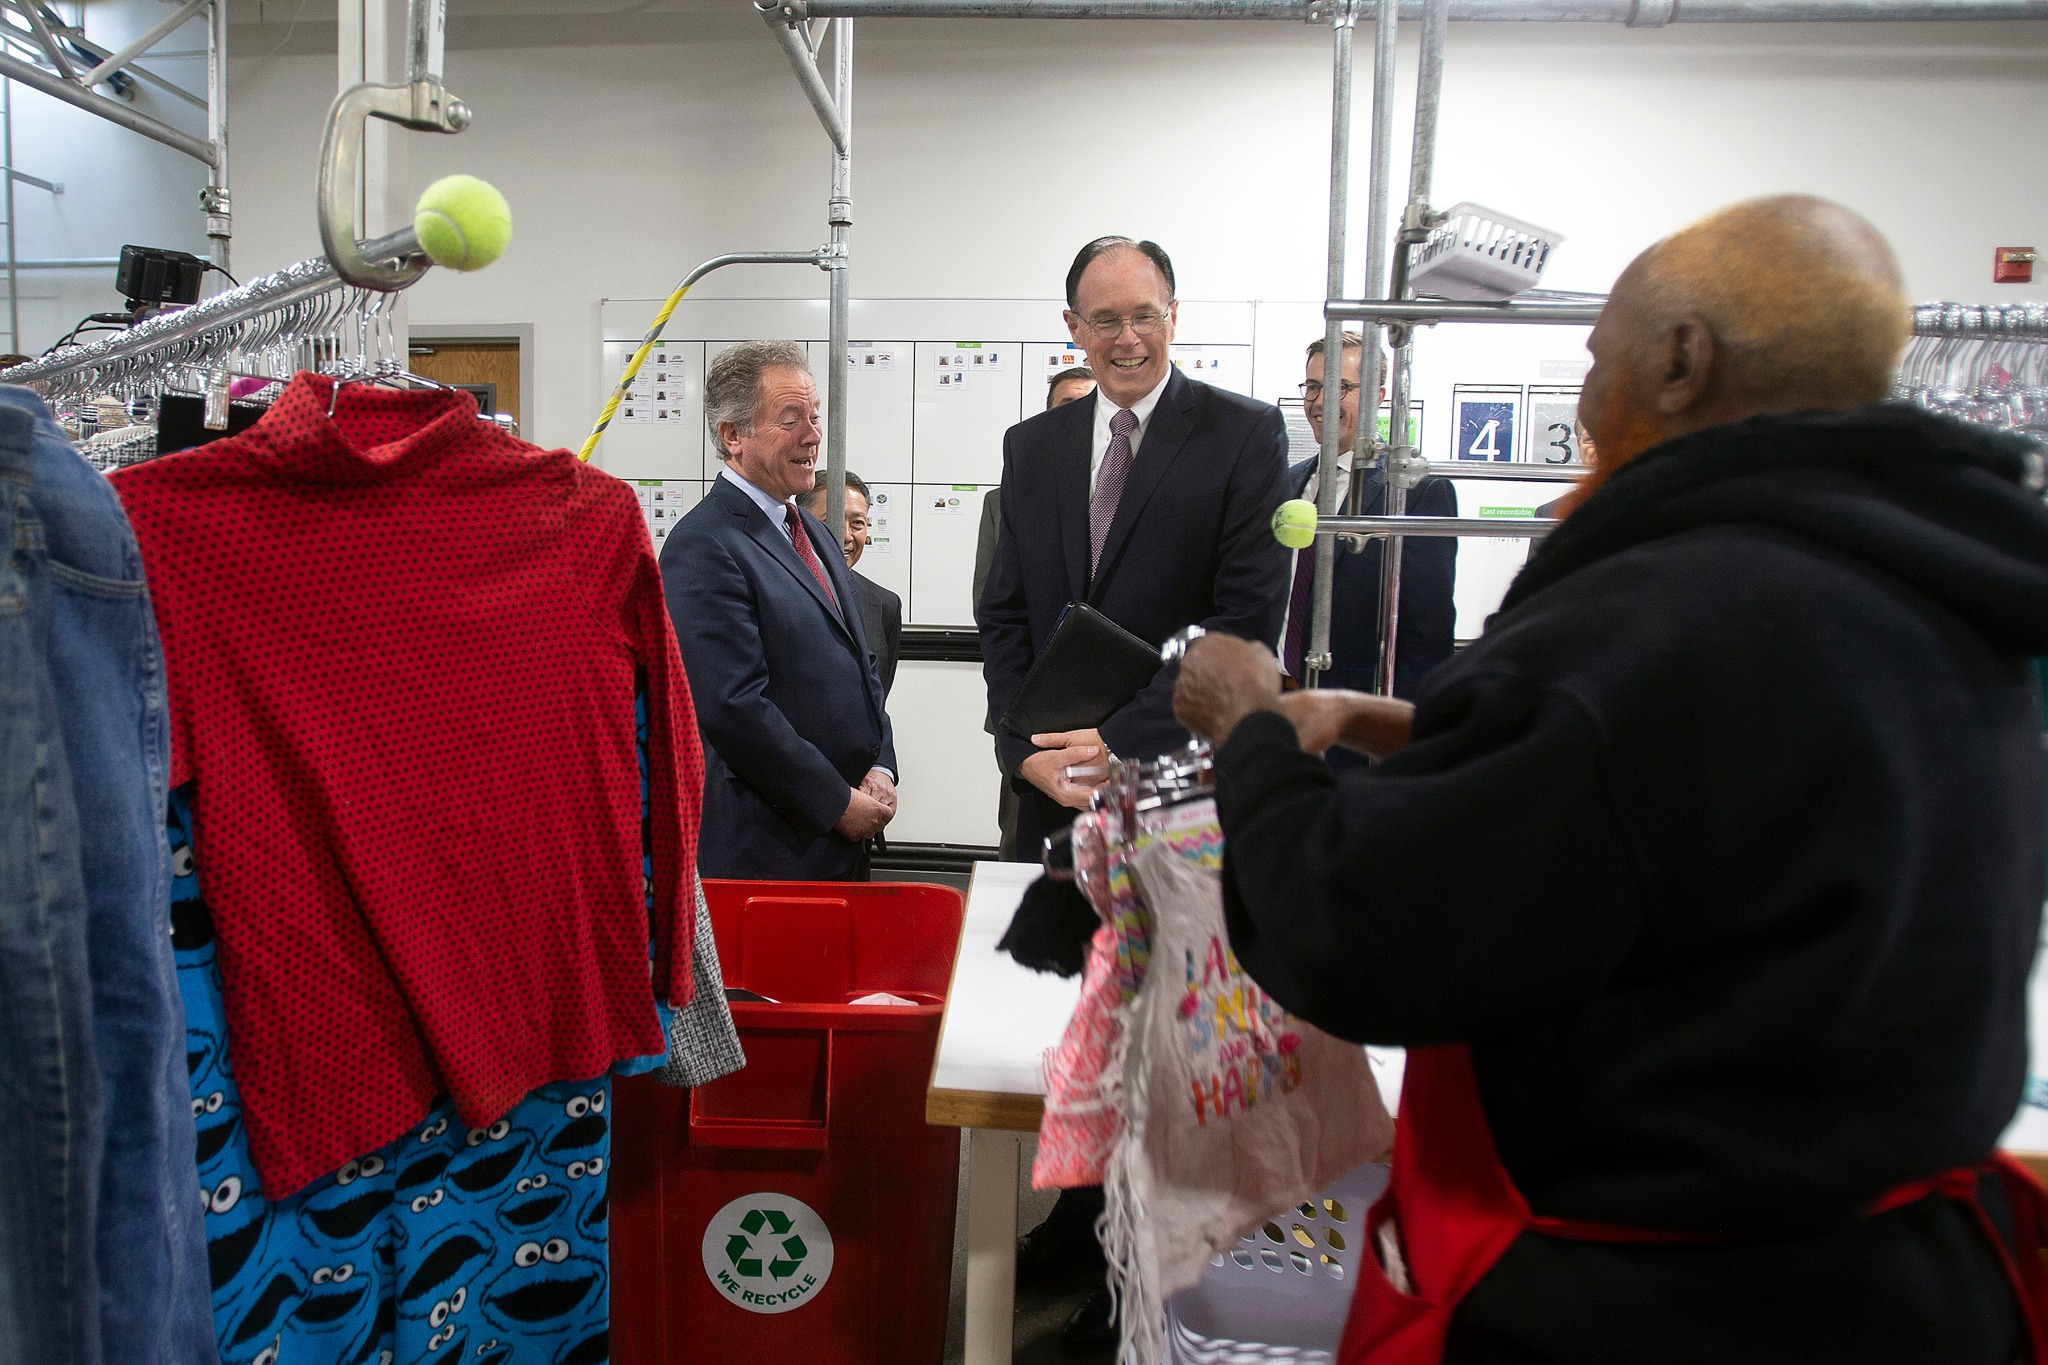 During a tour of Welfare Square, David Beasley, executive director of the United Nations World Food Program, is shown some of the clothes donated at the local Deseret Industries on Monday, Sept. 30, 2019, with Bishop W. Christopher Waddell of the Presiding Bishopric.